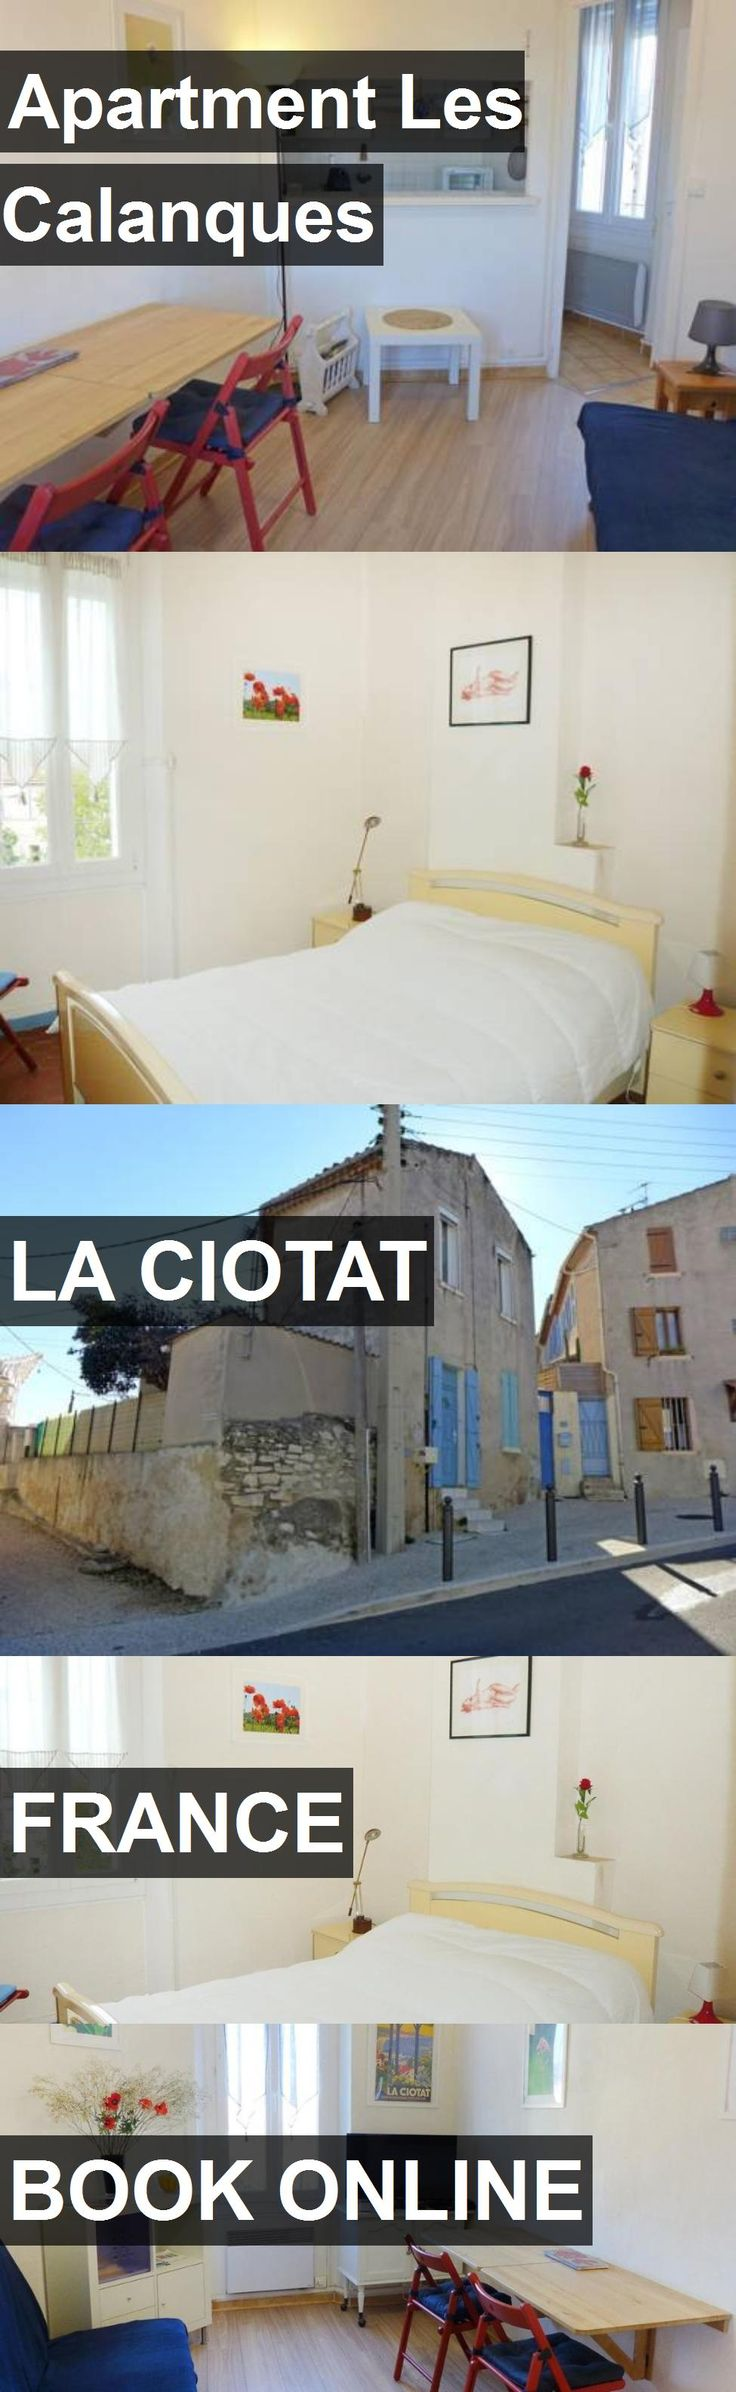 Apartment Les Calanques in La Ciotat, France. For more information, photos, reviews and best prices please follow the link. #France #LaCiotat #travel #vacation #apartment